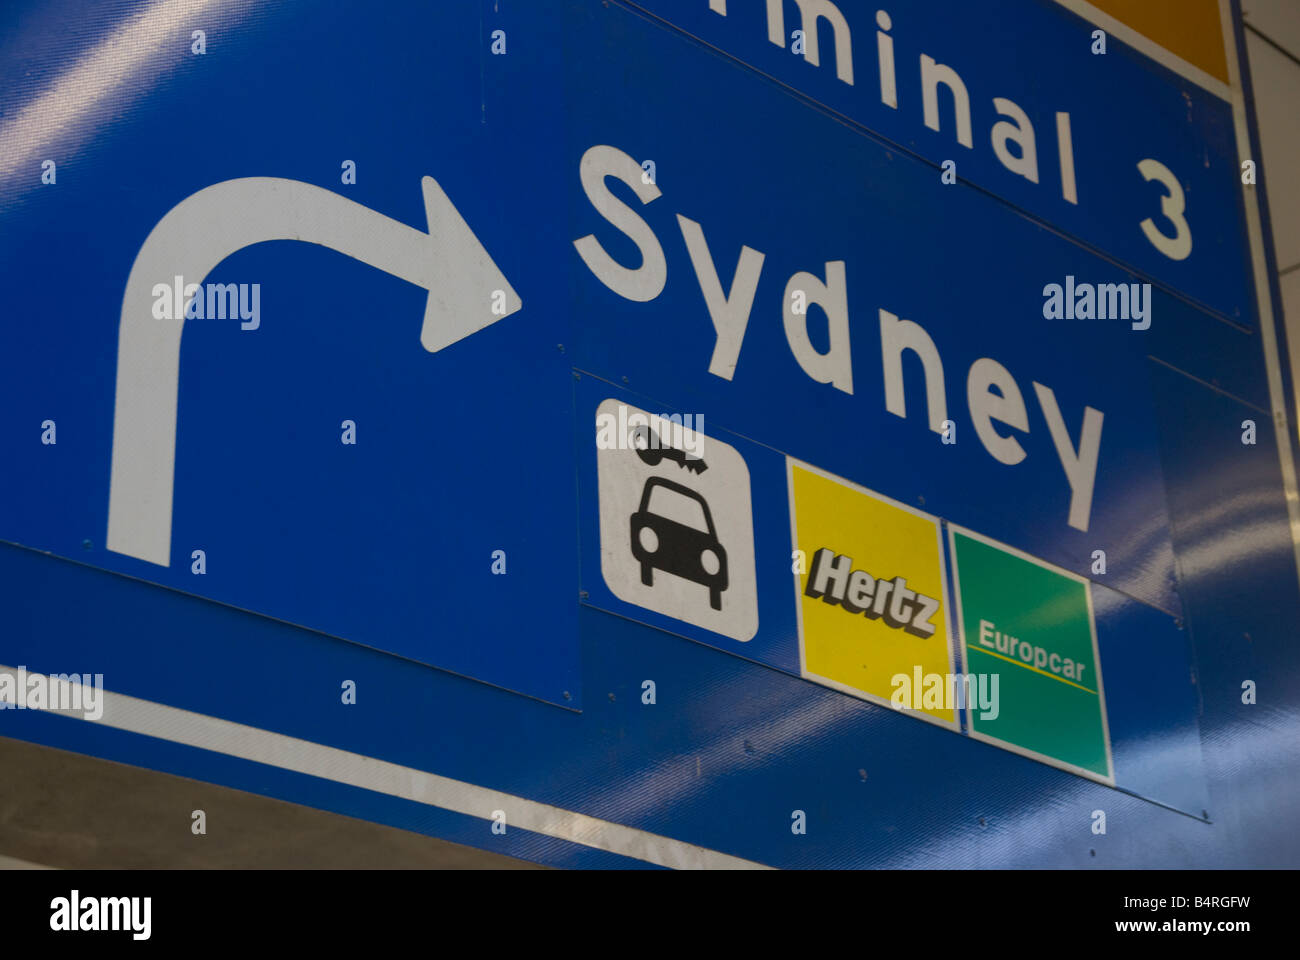 Car Hire Airport Stock Photos Car Hire Airport Stock Images Page